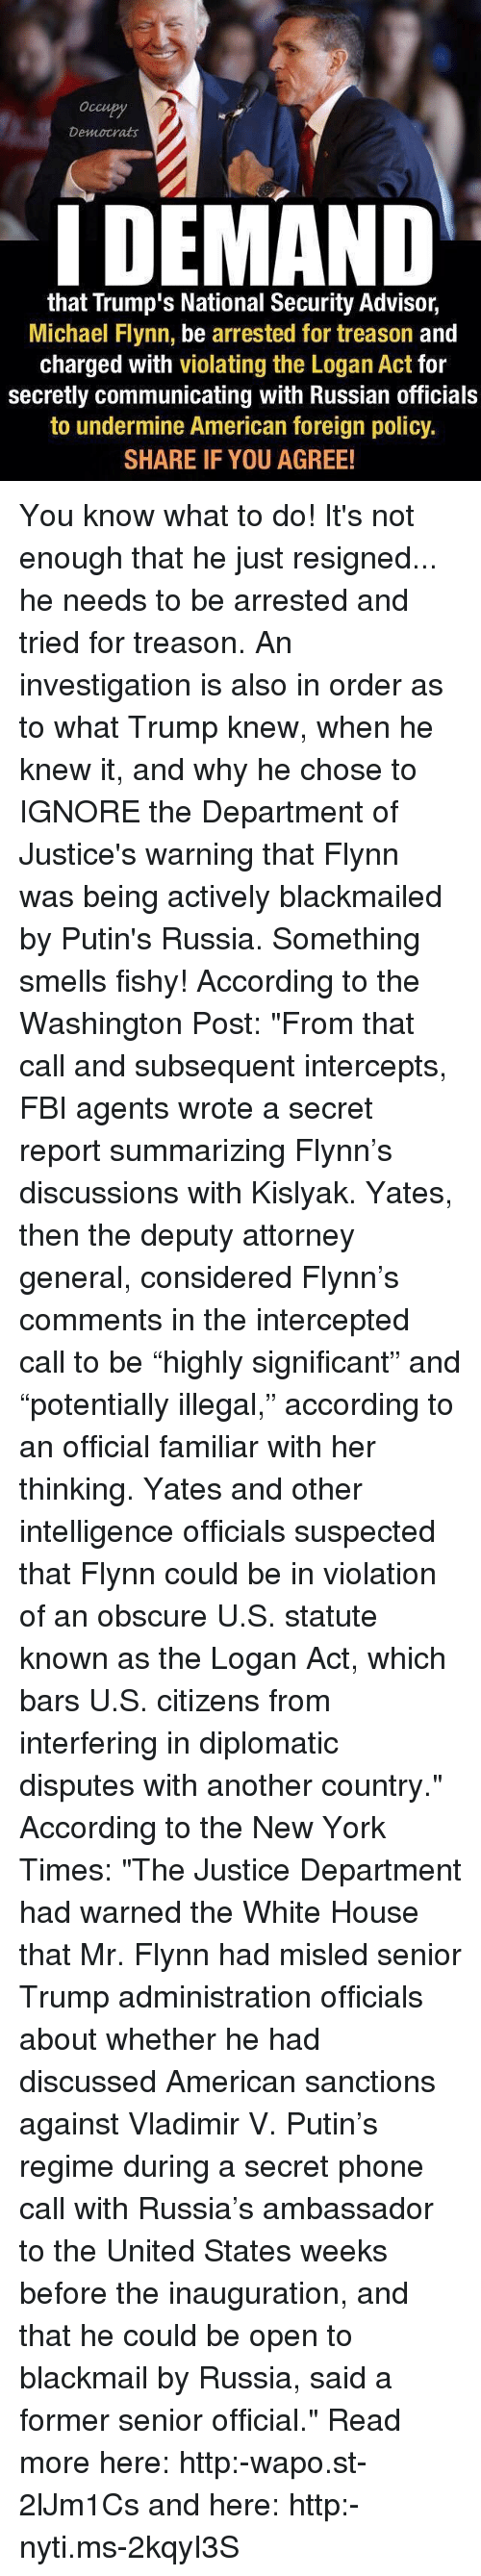 """Intercepted: Democrats  I DEMAND  that Trump's National Security Advisor,  Michael Flynn, be arrested for treason  and  charged with violating the Logan Act for  secretly communicating with Russian officials  to undermine American foreign policy.  SHARE IF YOU AGREE! You know what to do! It's not enough that he just resigned... he needs to be arrested and tried for treason. An investigation is also in order as to what Trump knew, when he knew it, and why he chose to IGNORE the Department of Justice's warning that Flynn was being actively blackmailed by Putin's Russia. Something smells fishy! According to the Washington Post: """"From that call and subsequent intercepts, FBI agents wrote a secret report summarizing Flynn's discussions with Kislyak. Yates, then the deputy attorney general, considered Flynn's comments in the intercepted call to be """"highly significant"""" and """"potentially illegal,"""" according to an official familiar with her thinking. Yates and other intelligence officials suspected that Flynn could be in violation of an obscure U.S. statute known as the Logan Act, which bars U.S. citizens from interfering in diplomatic disputes with another country."""" According to the New York Times: """"The Justice Department had warned the White House that Mr. Flynn had misled senior Trump administration officials about whether he had discussed American sanctions against Vladimir V. Putin's regime during a secret phone call with Russia's ambassador to the United States weeks before the inauguration, and that he could be open to blackmail by Russia, said a former senior official."""" Read more here: http:-wapo.st-2lJm1Cs and here: http:-nyti.ms-2kqyI3S"""